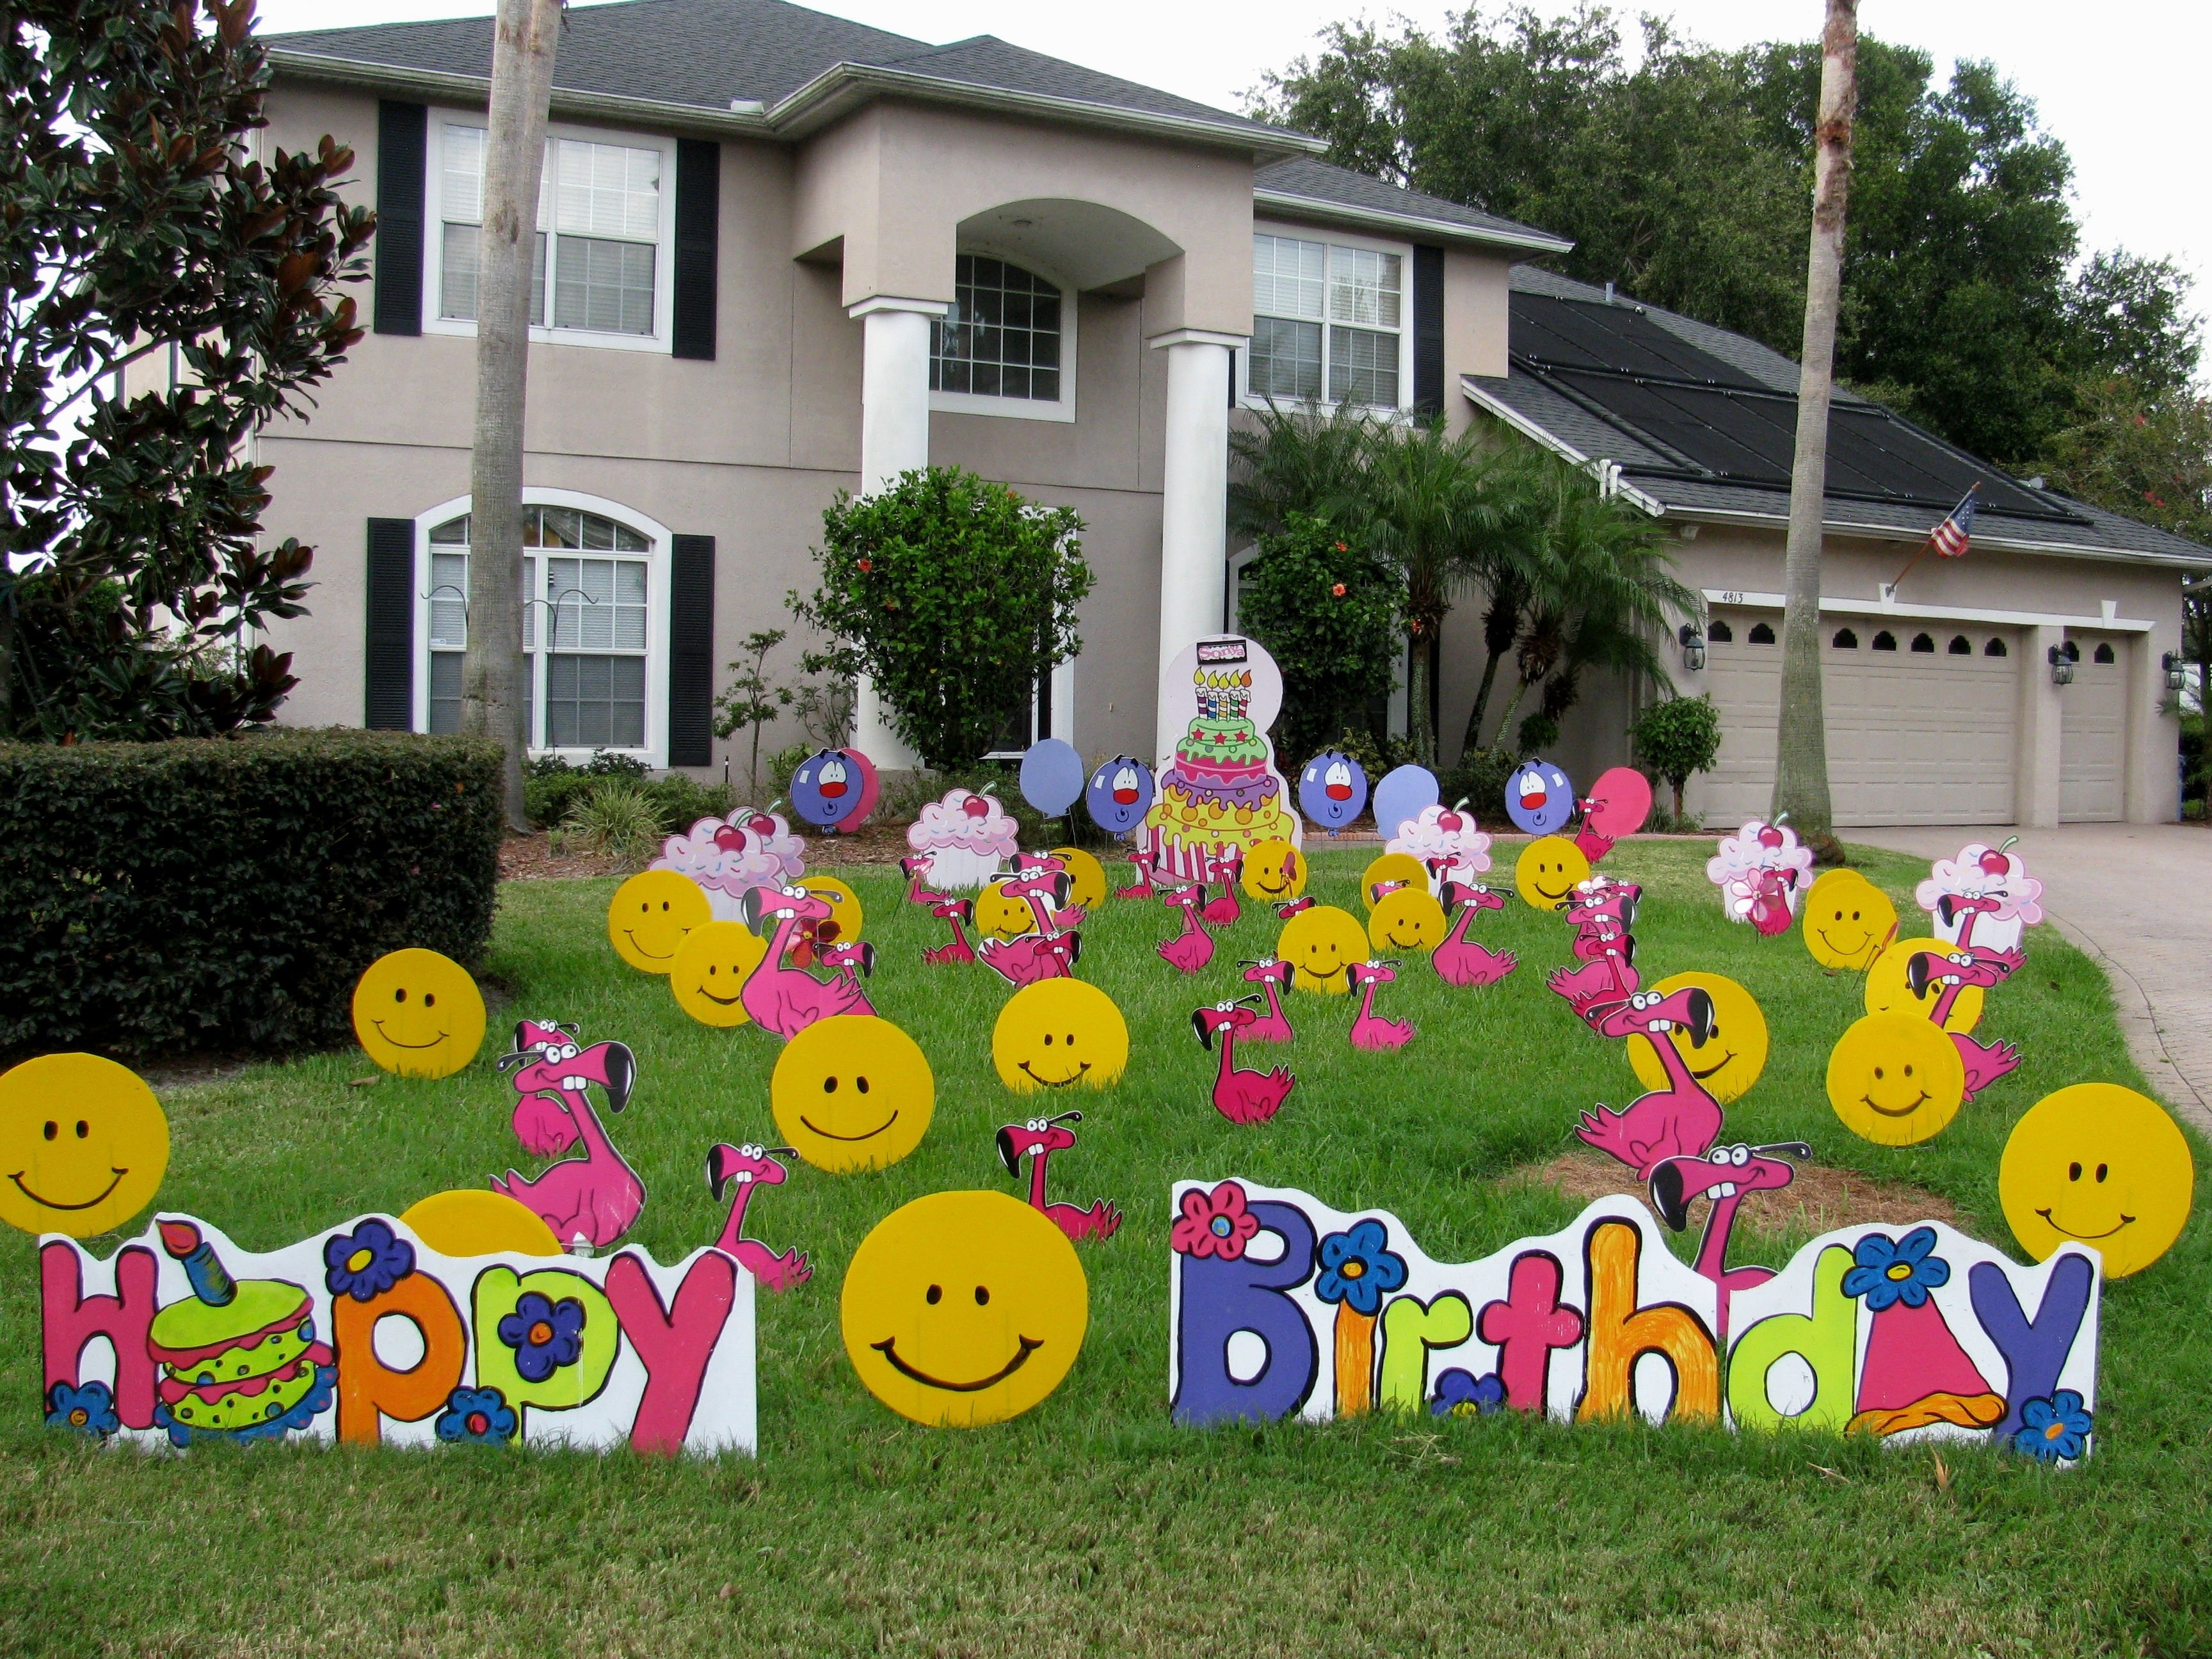 10 Lovable Outdoor Birthday Party Decoration Ideas outdoor party decorating ideas internetunblock internetunblock 1 & 10 Lovable Outdoor Birthday Party Decoration Ideas